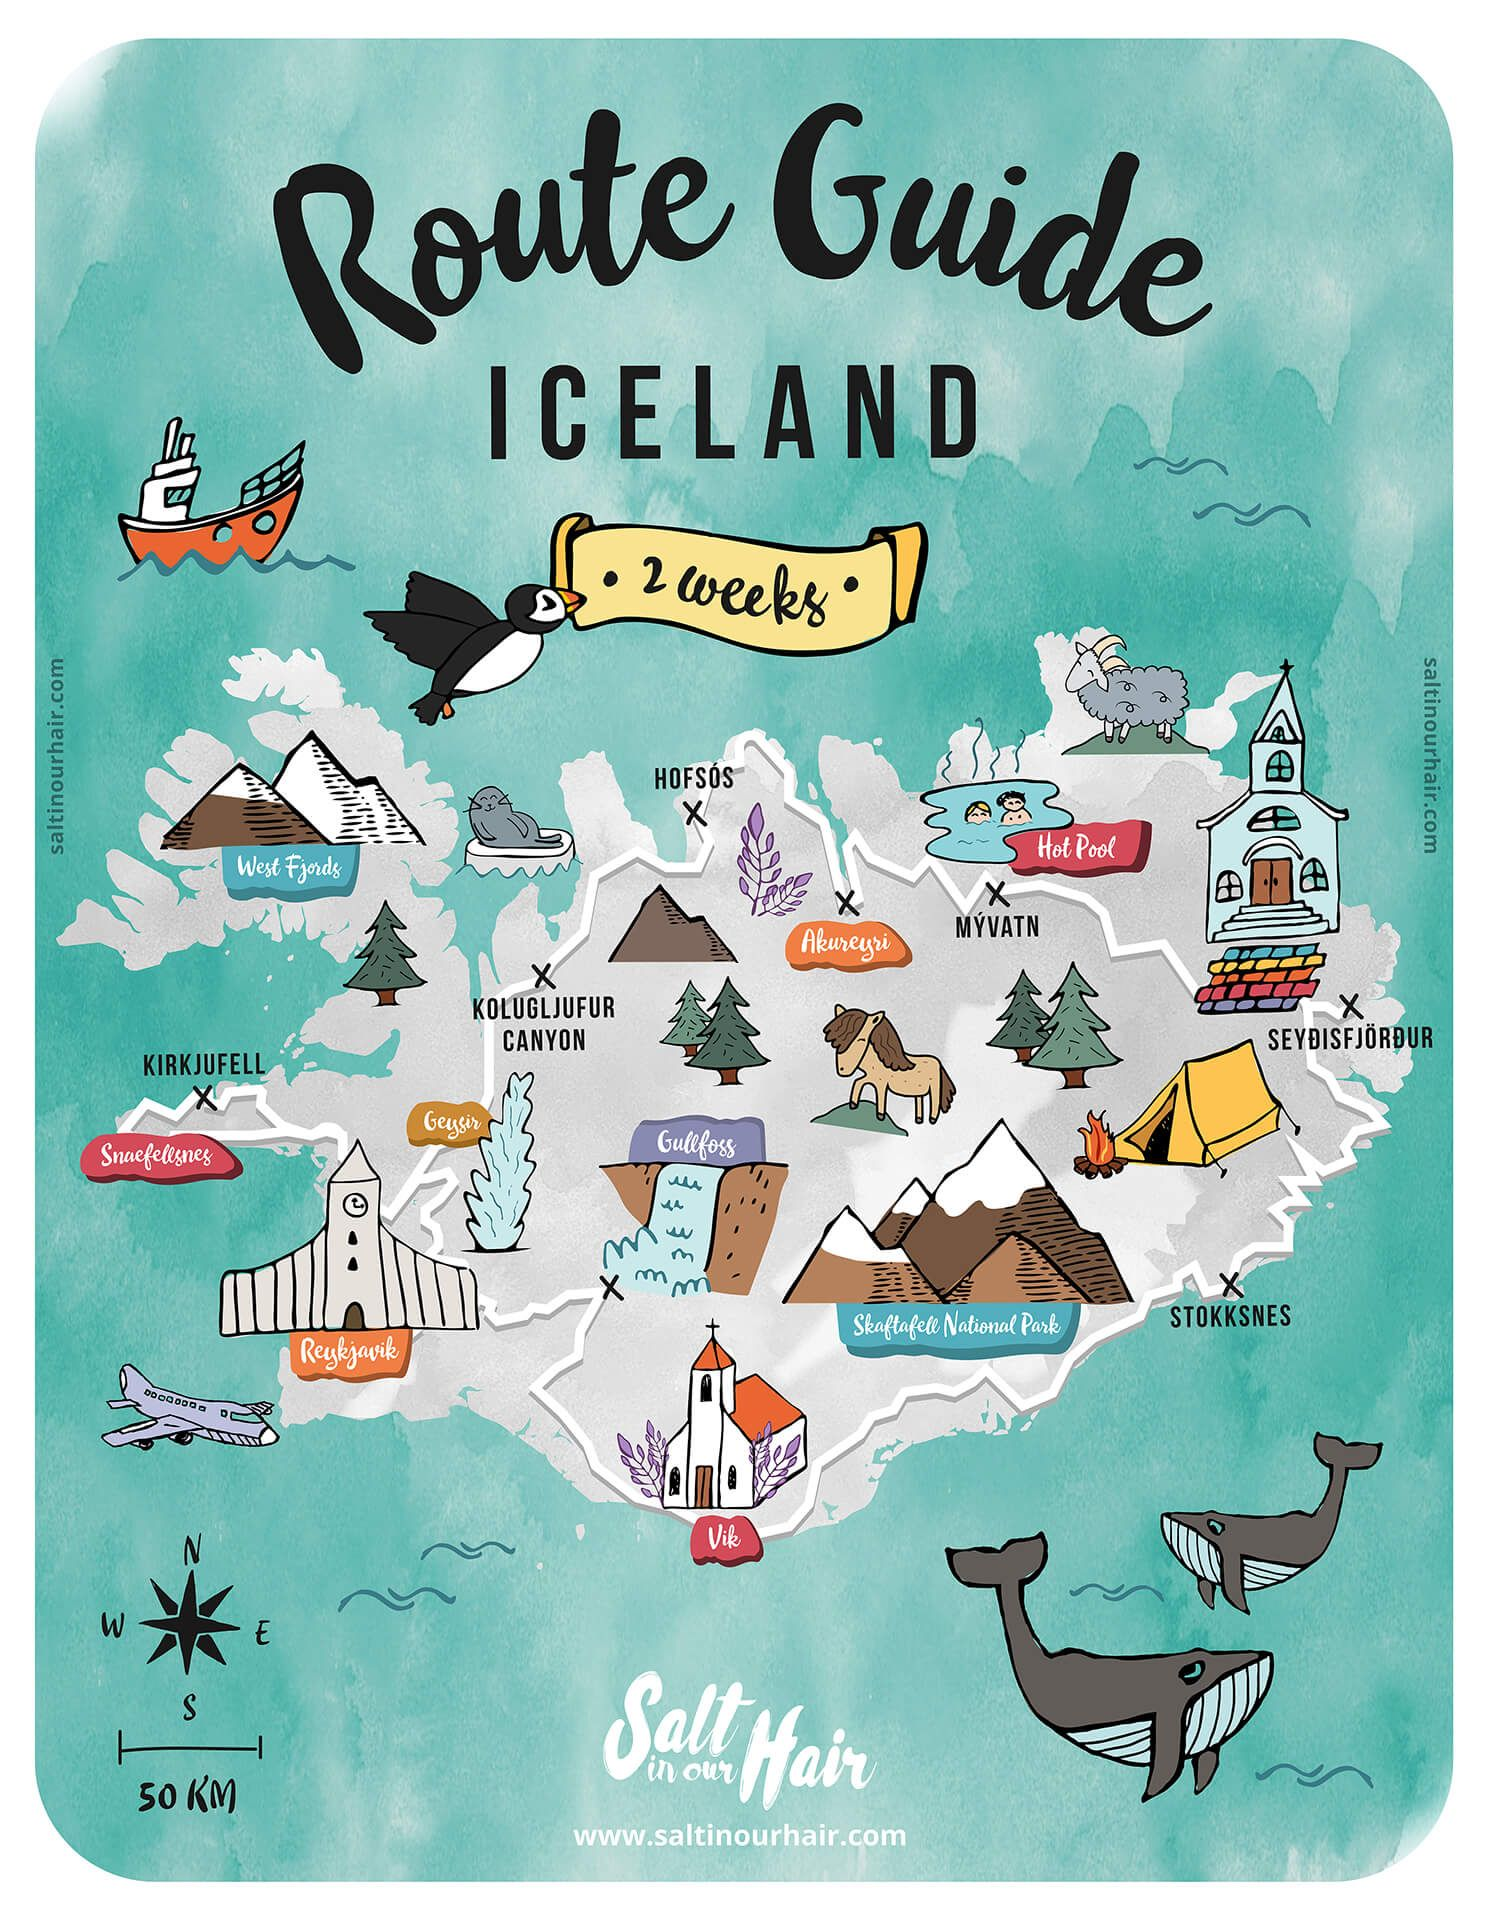 Iceland Route Guide Ultimate 2 Week Iceland Travel Itinerary Iceland Travel Itinerary Iceland Travel Iceland Travel Tips